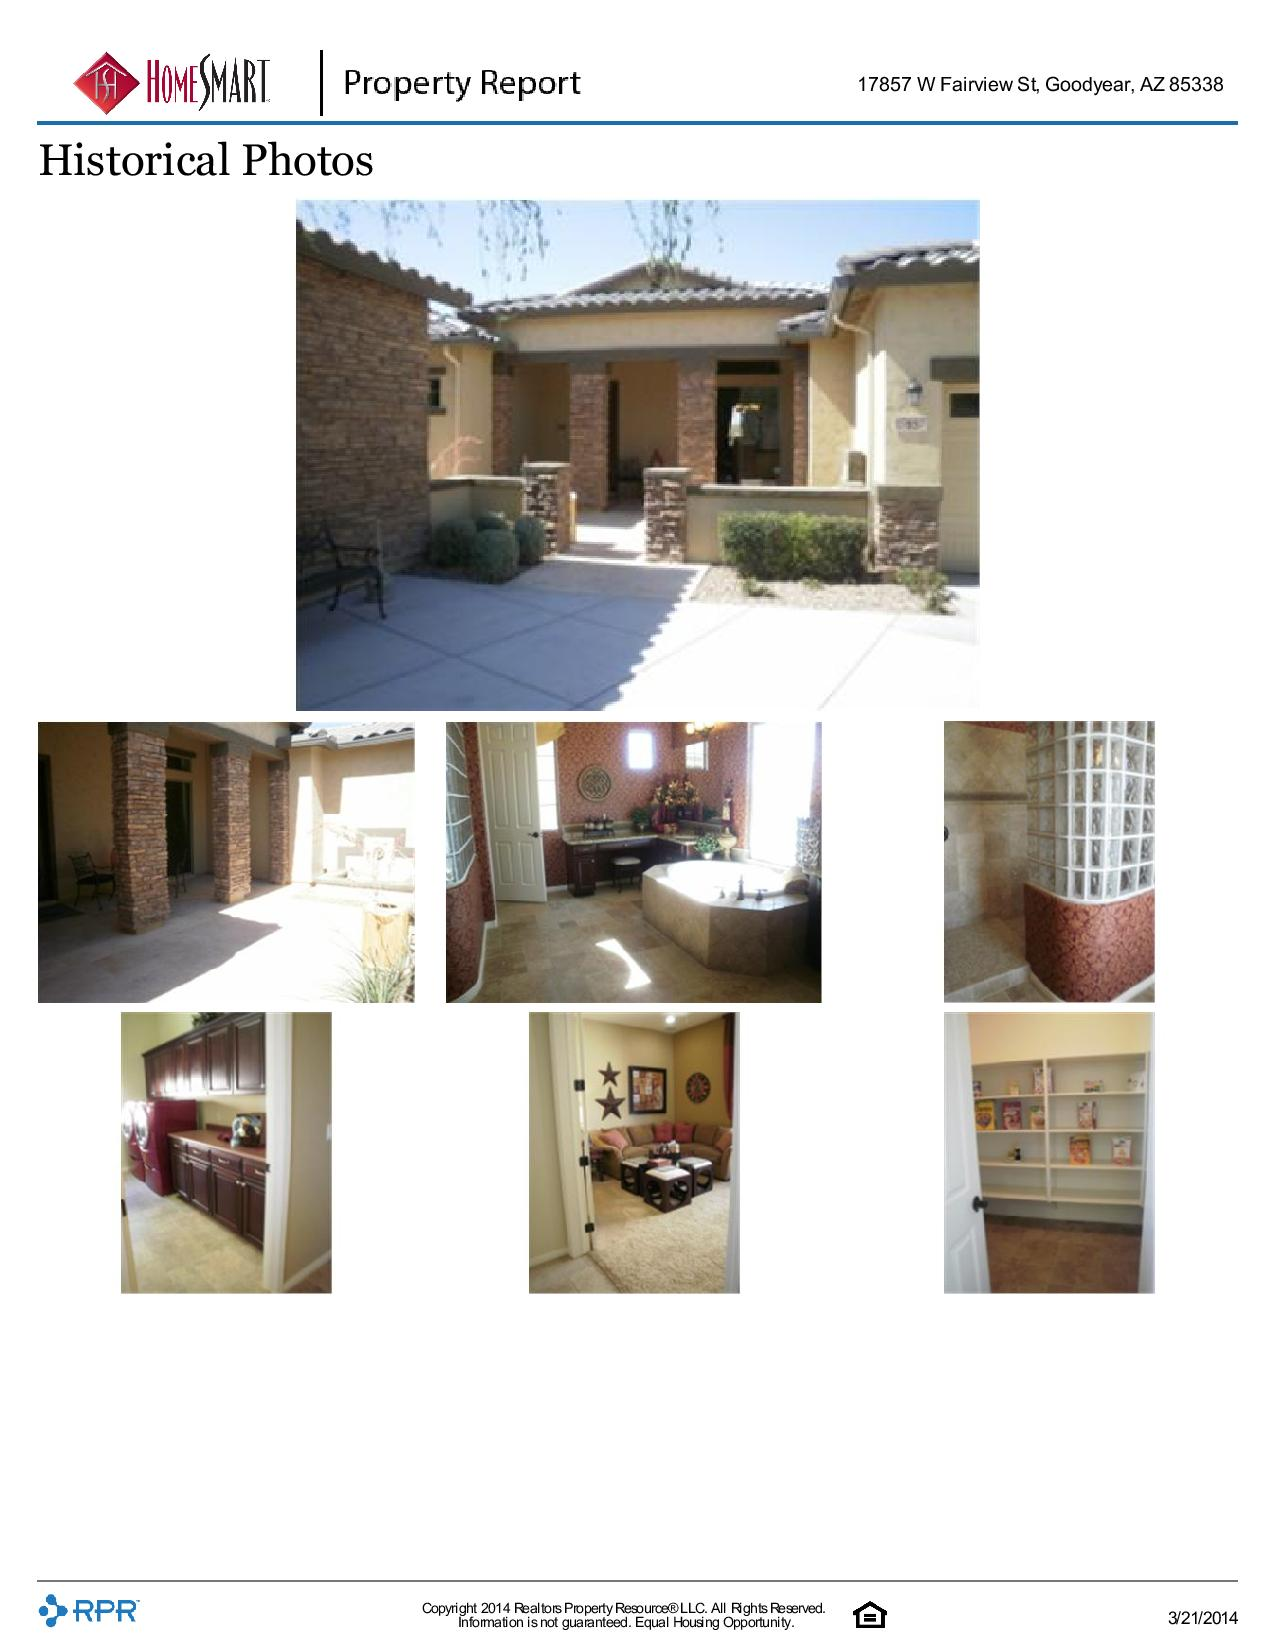 17857-W-Fairview-St-Goodyear-AZ-85338-page-007